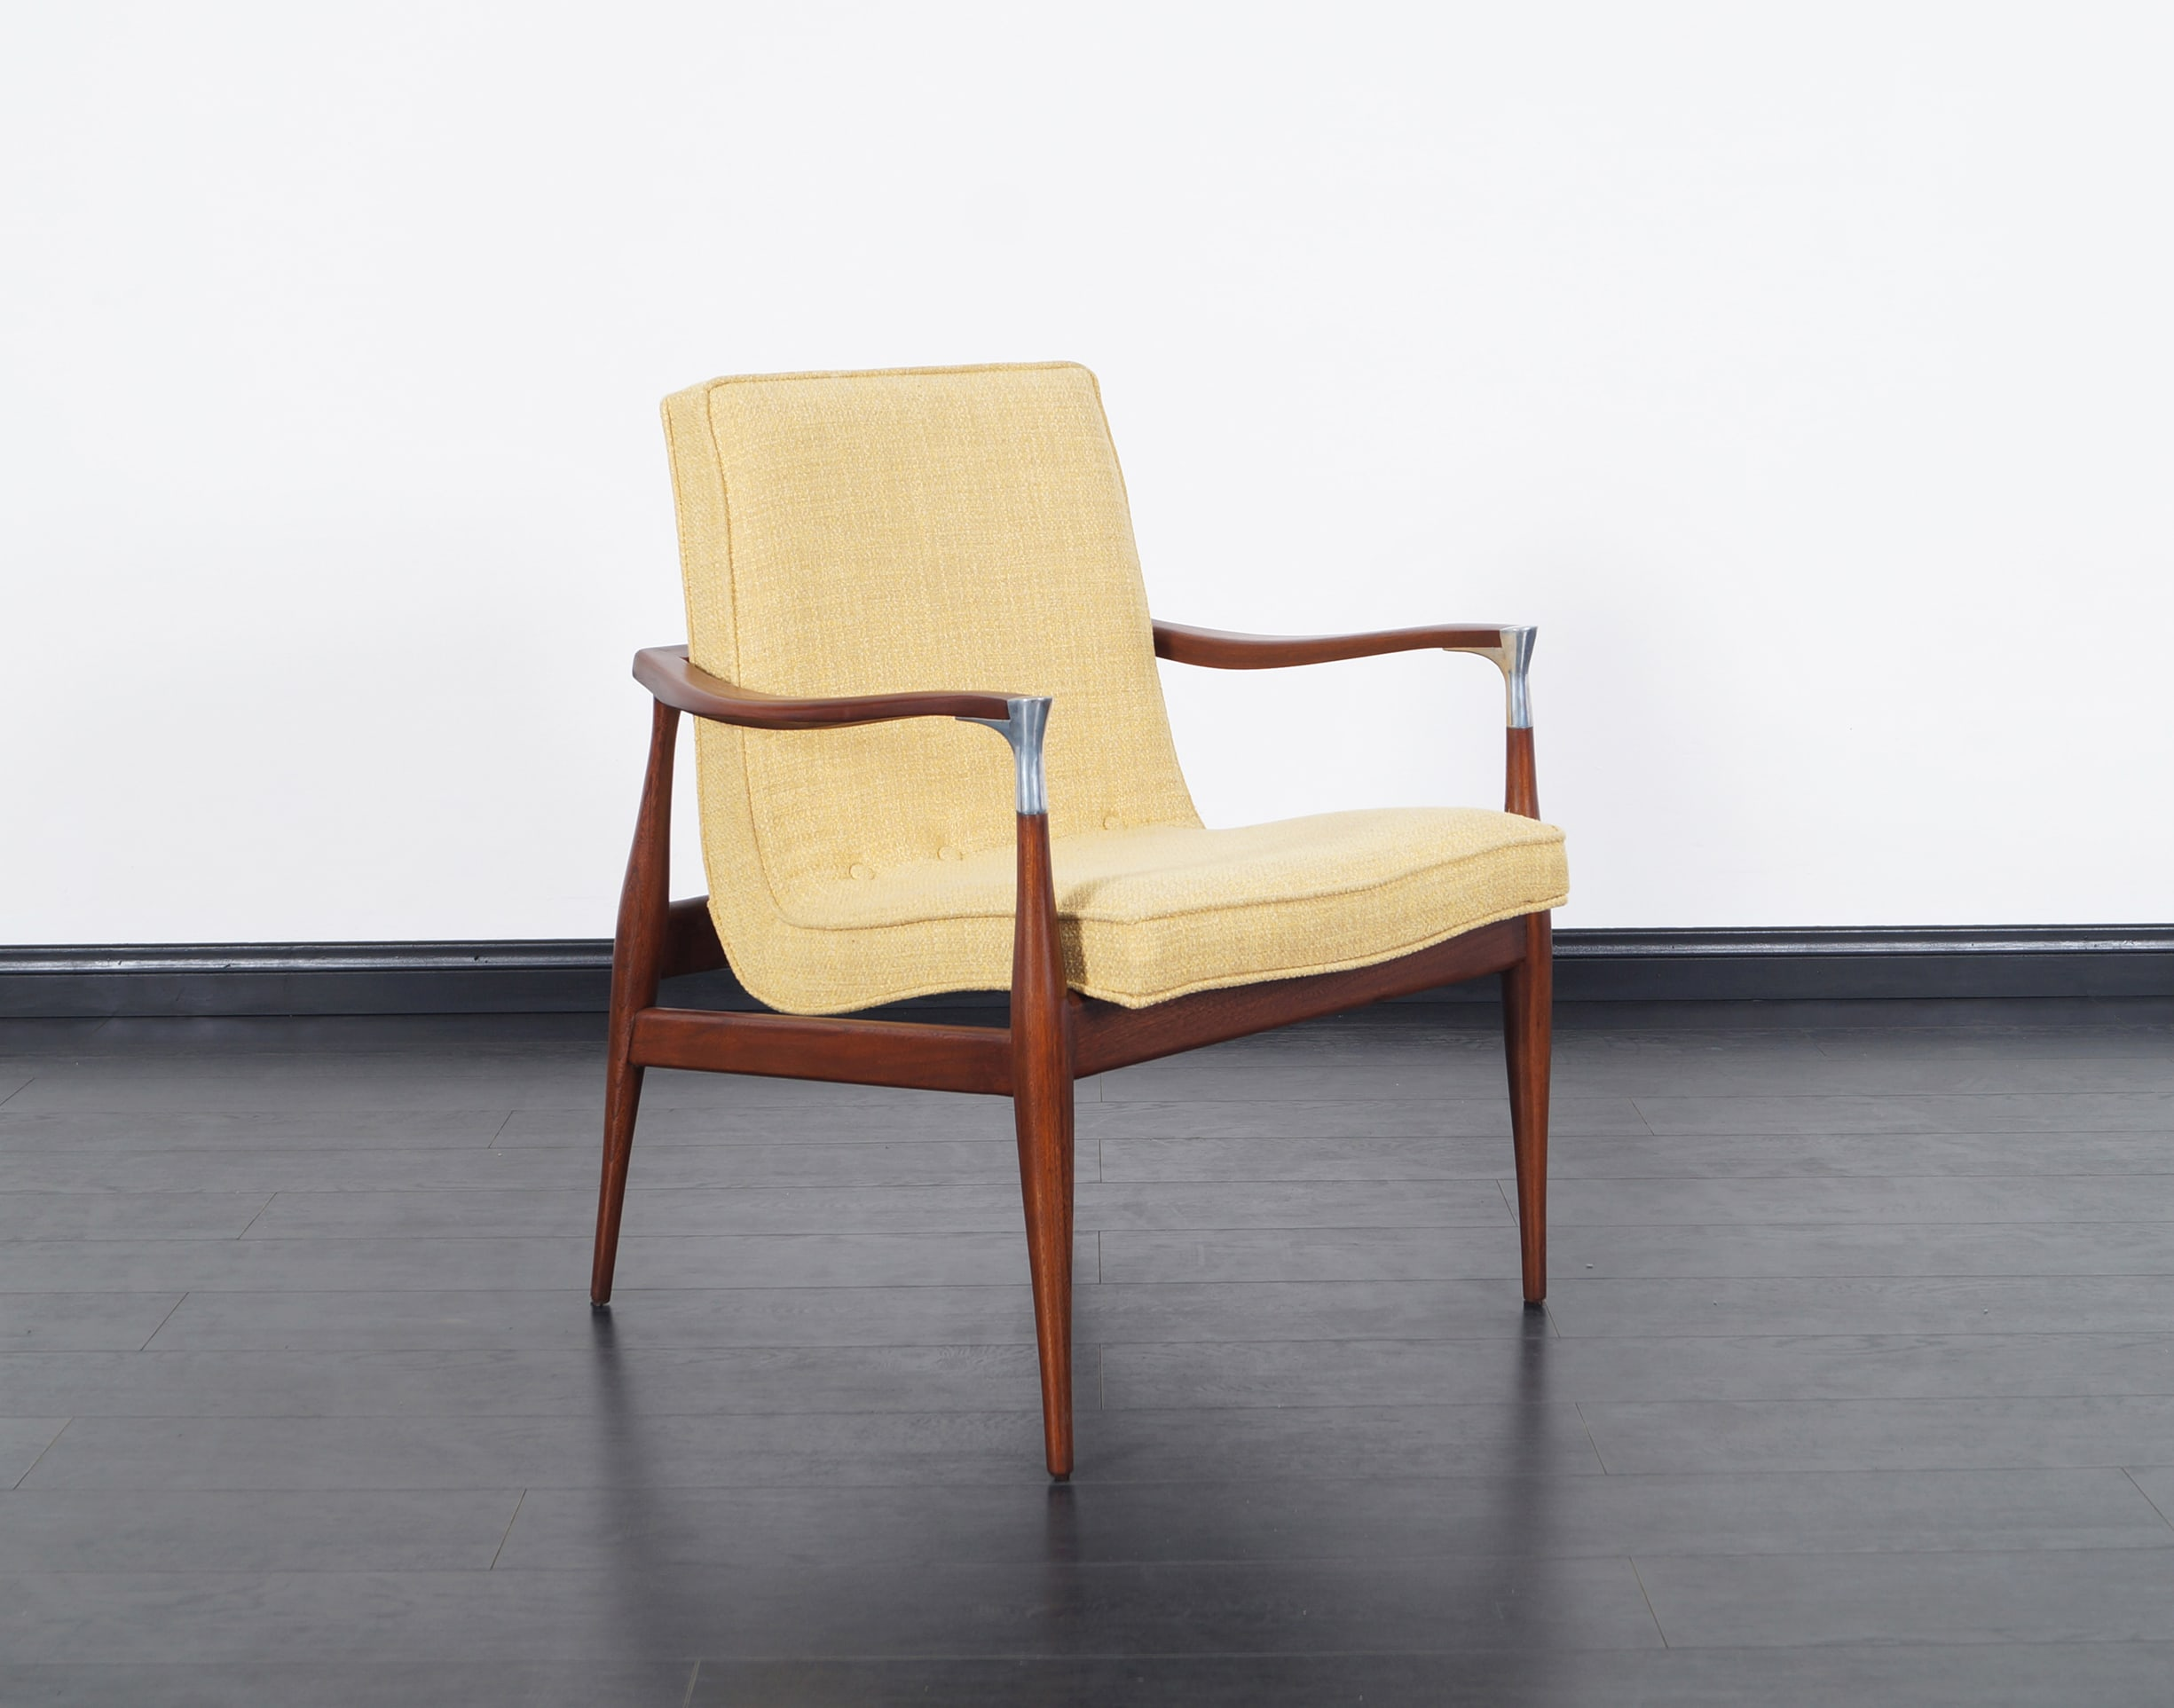 Danish Modern Chairs by Ib Kofod Larsen